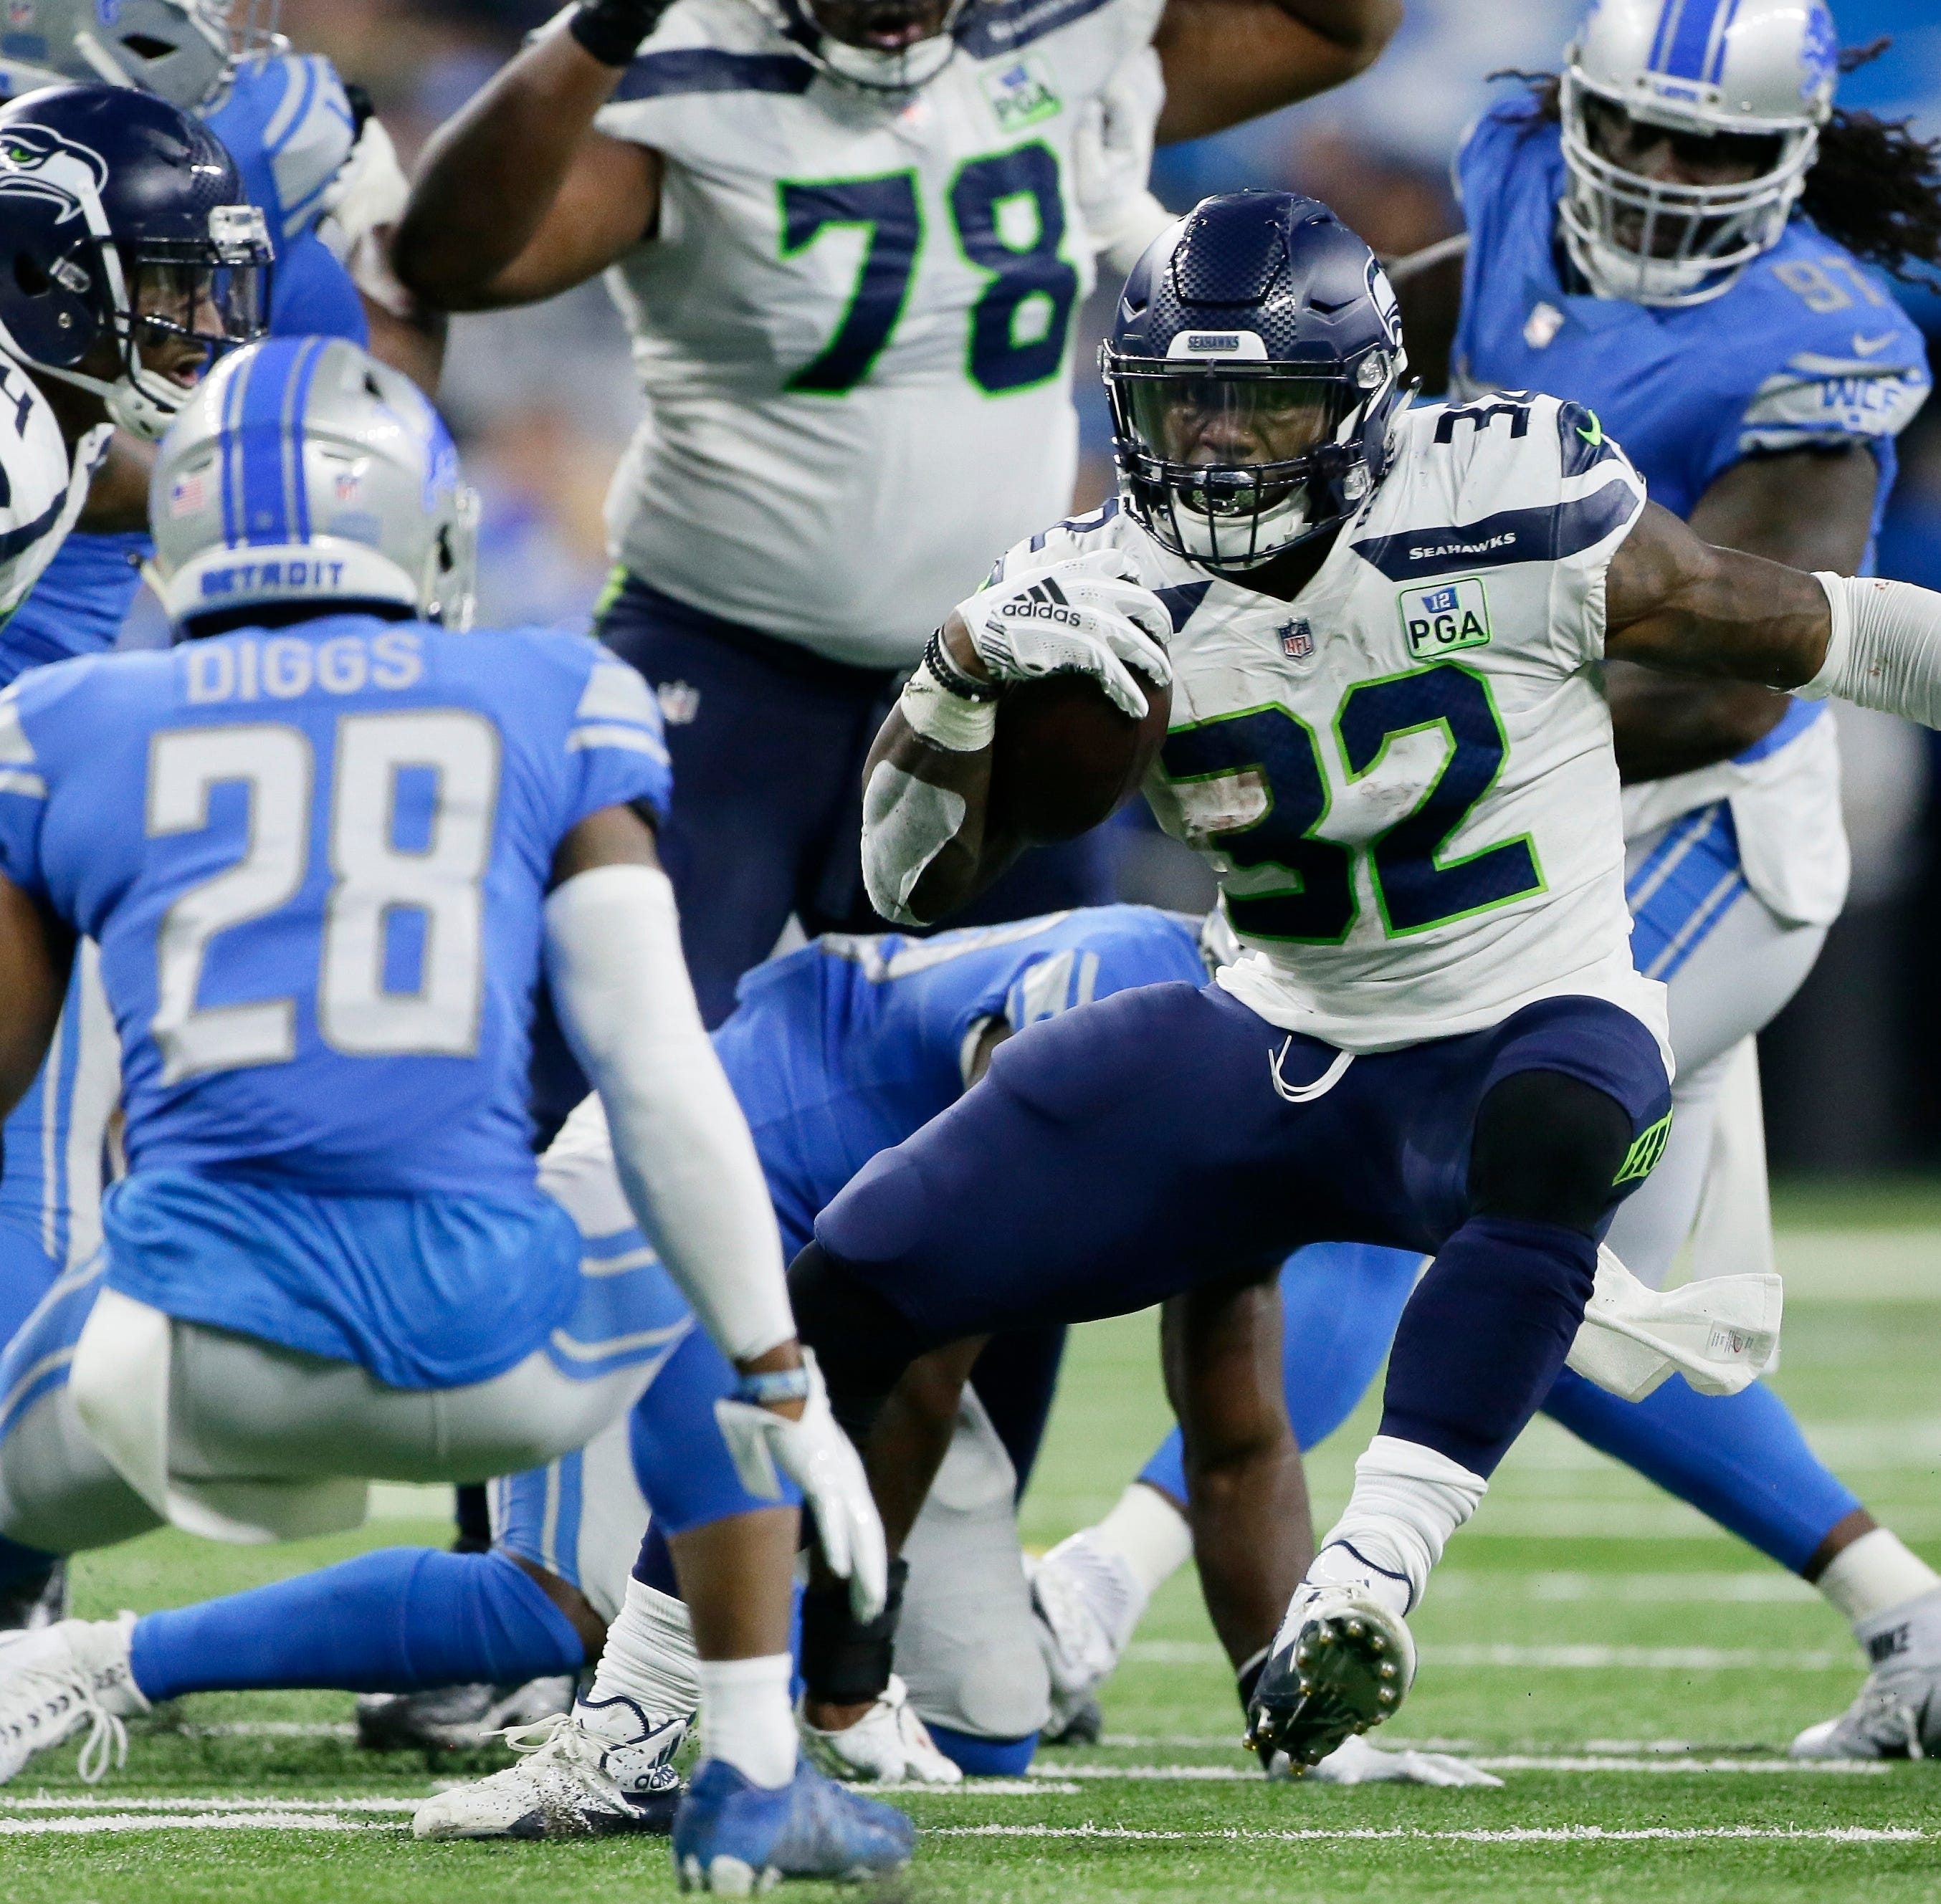 Seahawks' running back depth will be tested against Rams